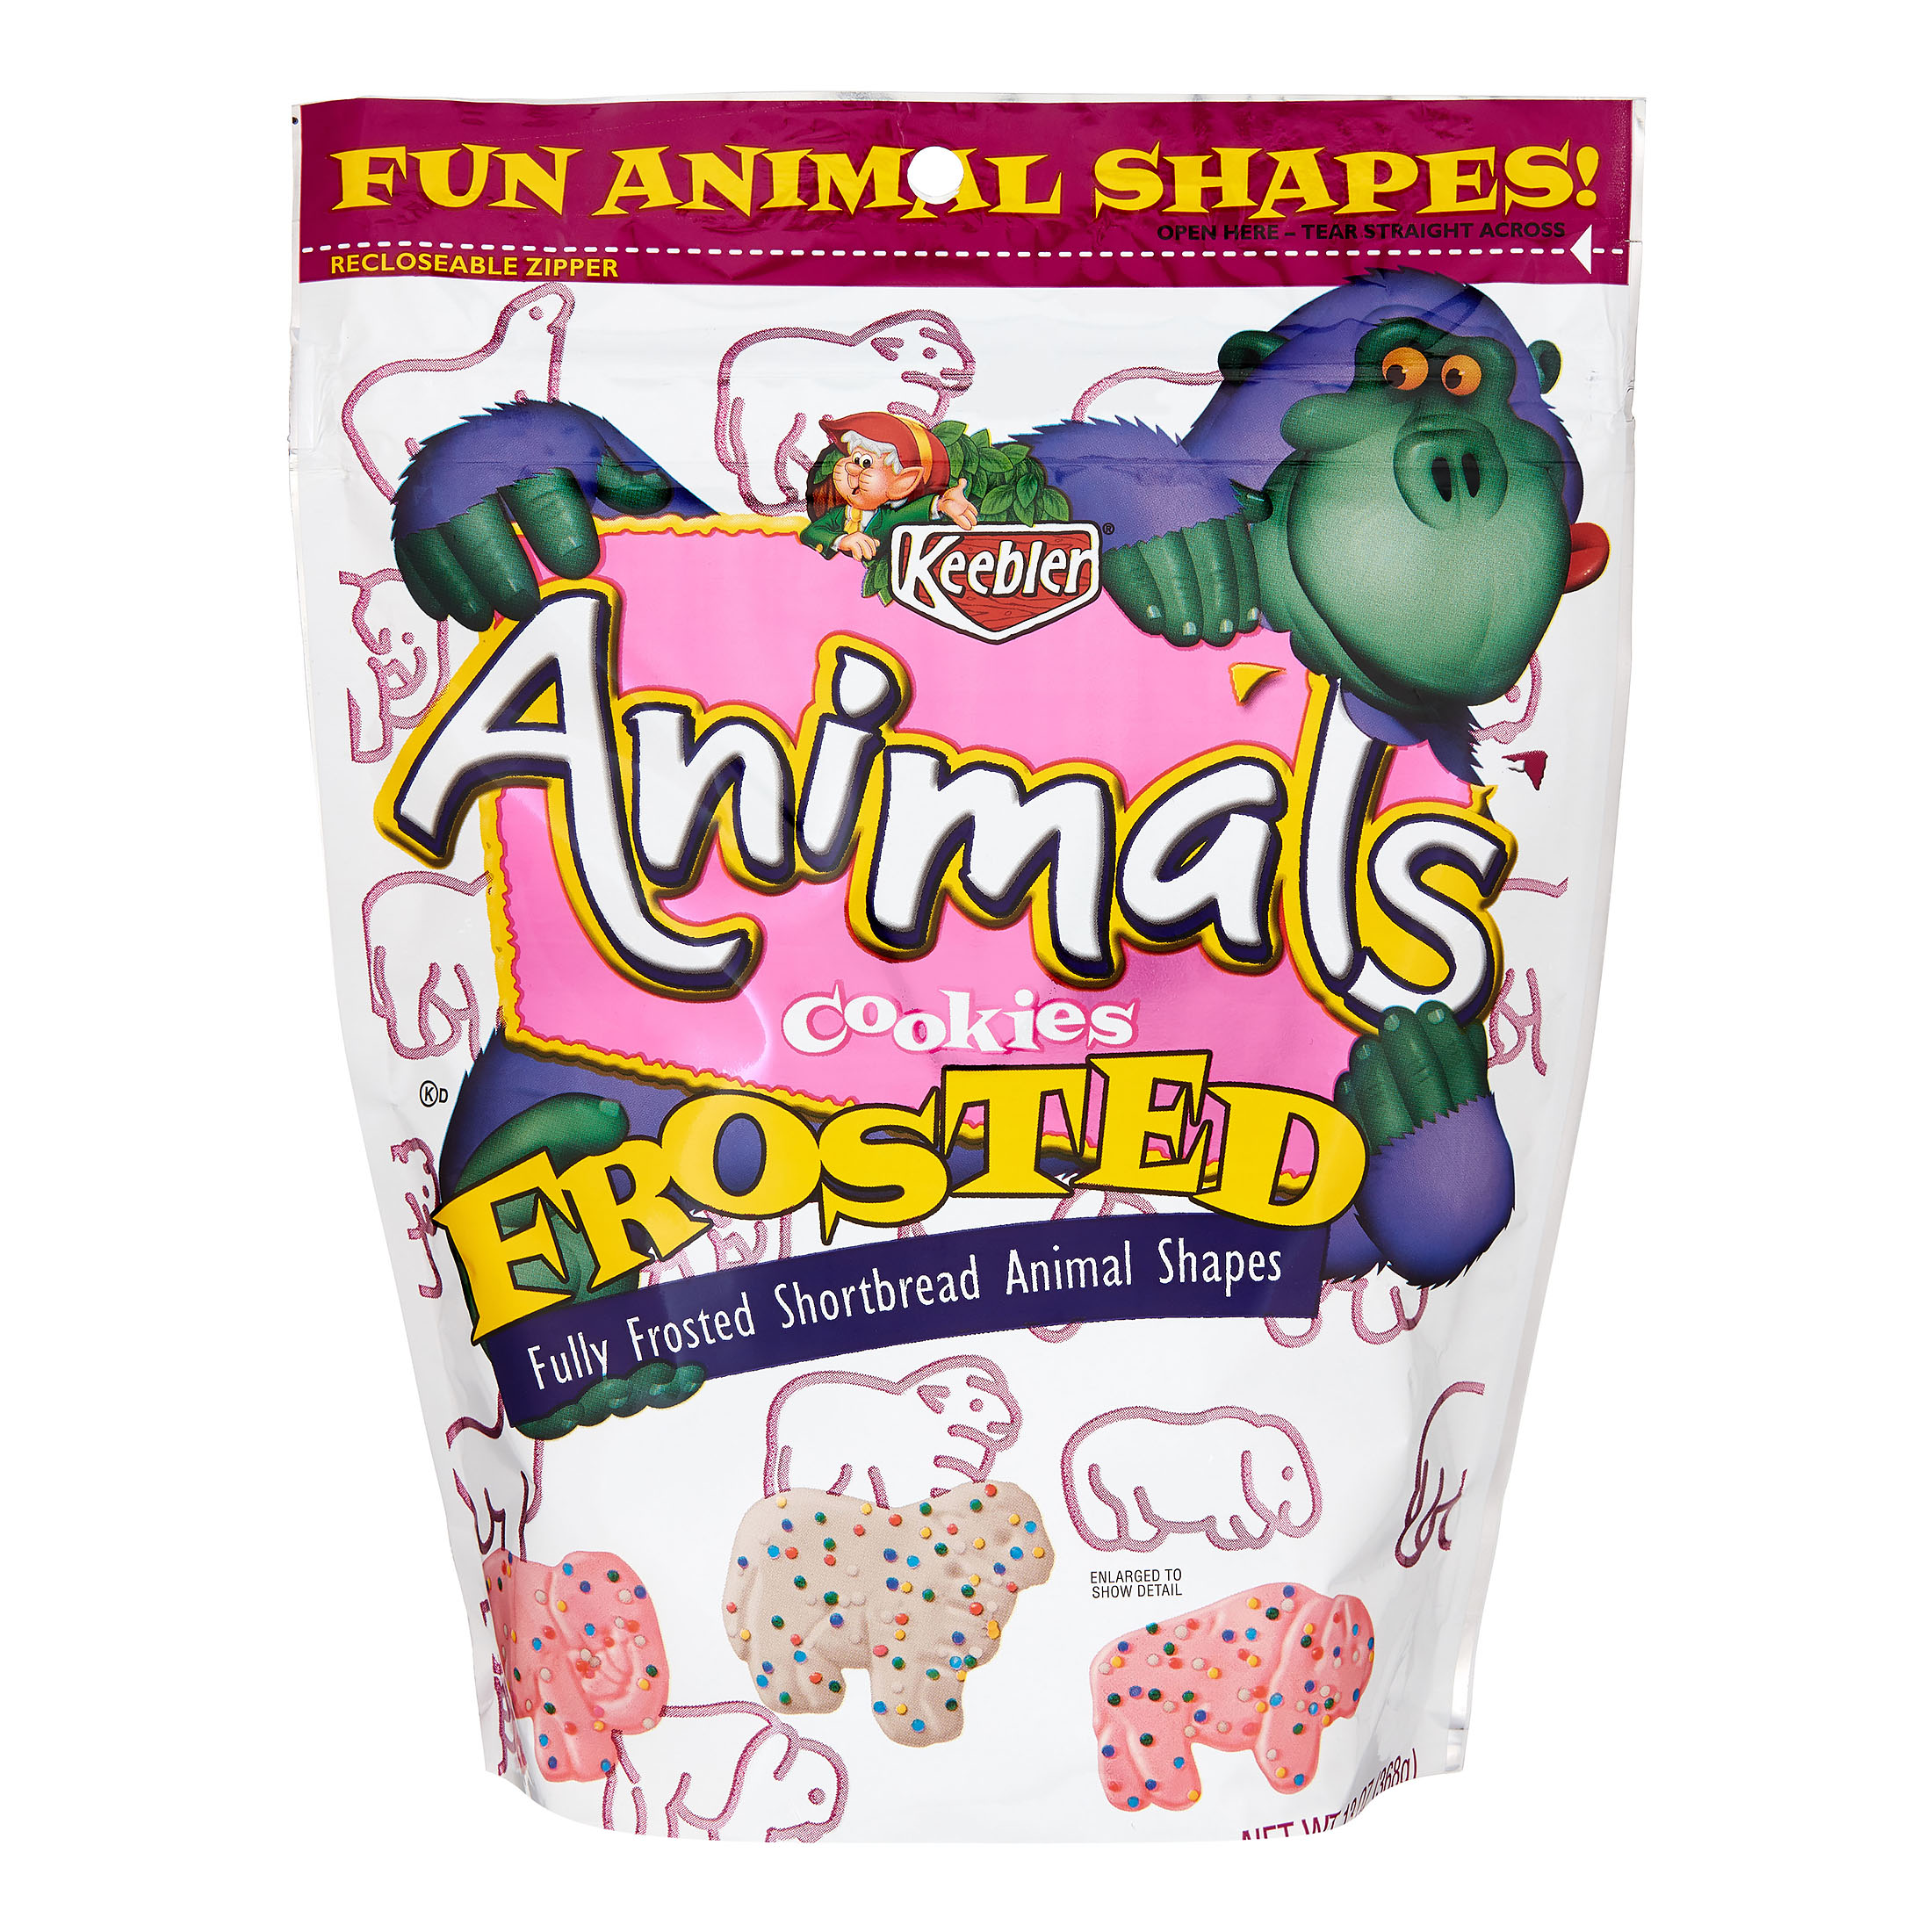 Keebler Frosted Animal Shortbread Shape Cookies, 13 oz